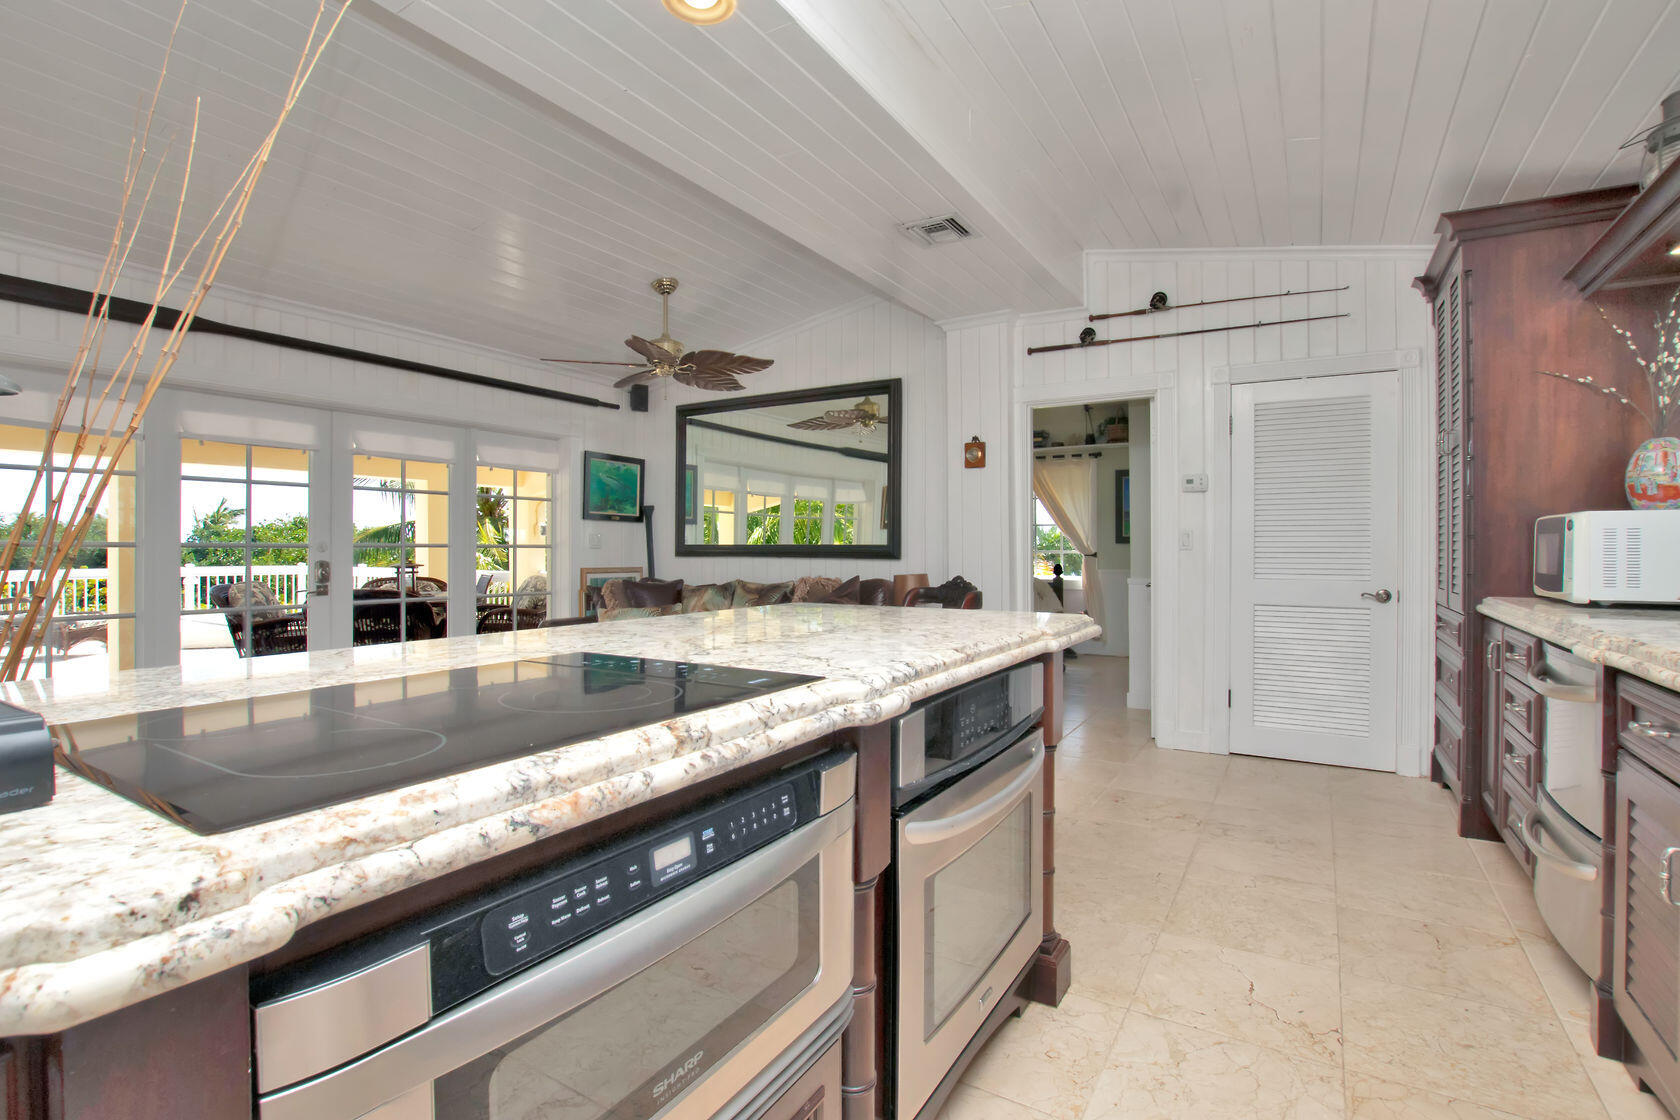 80909 Old Highway Property Photo 16